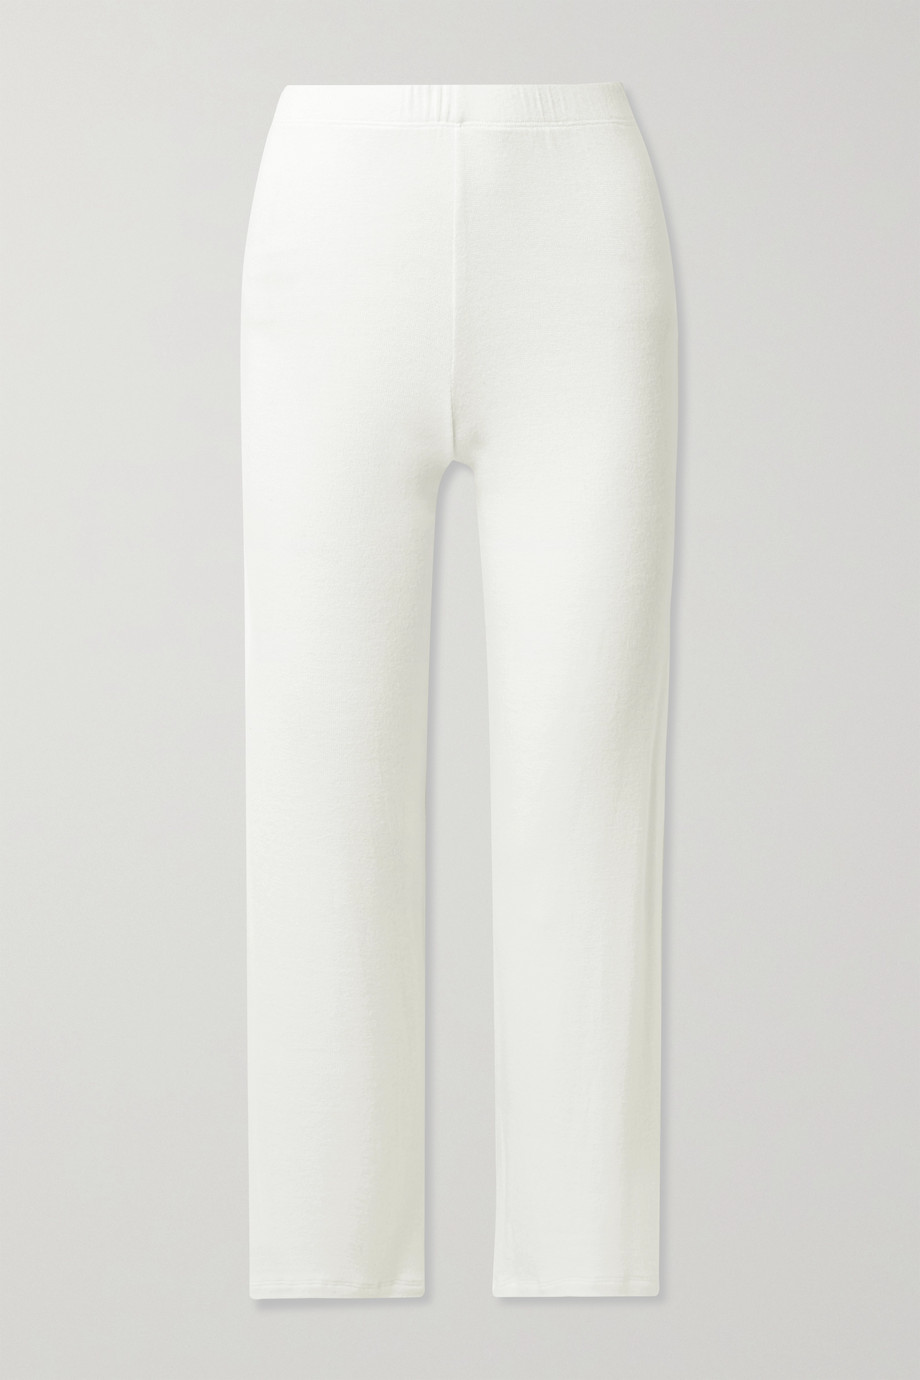 LESET Lori brushed stretch-jersey wide-leg pants